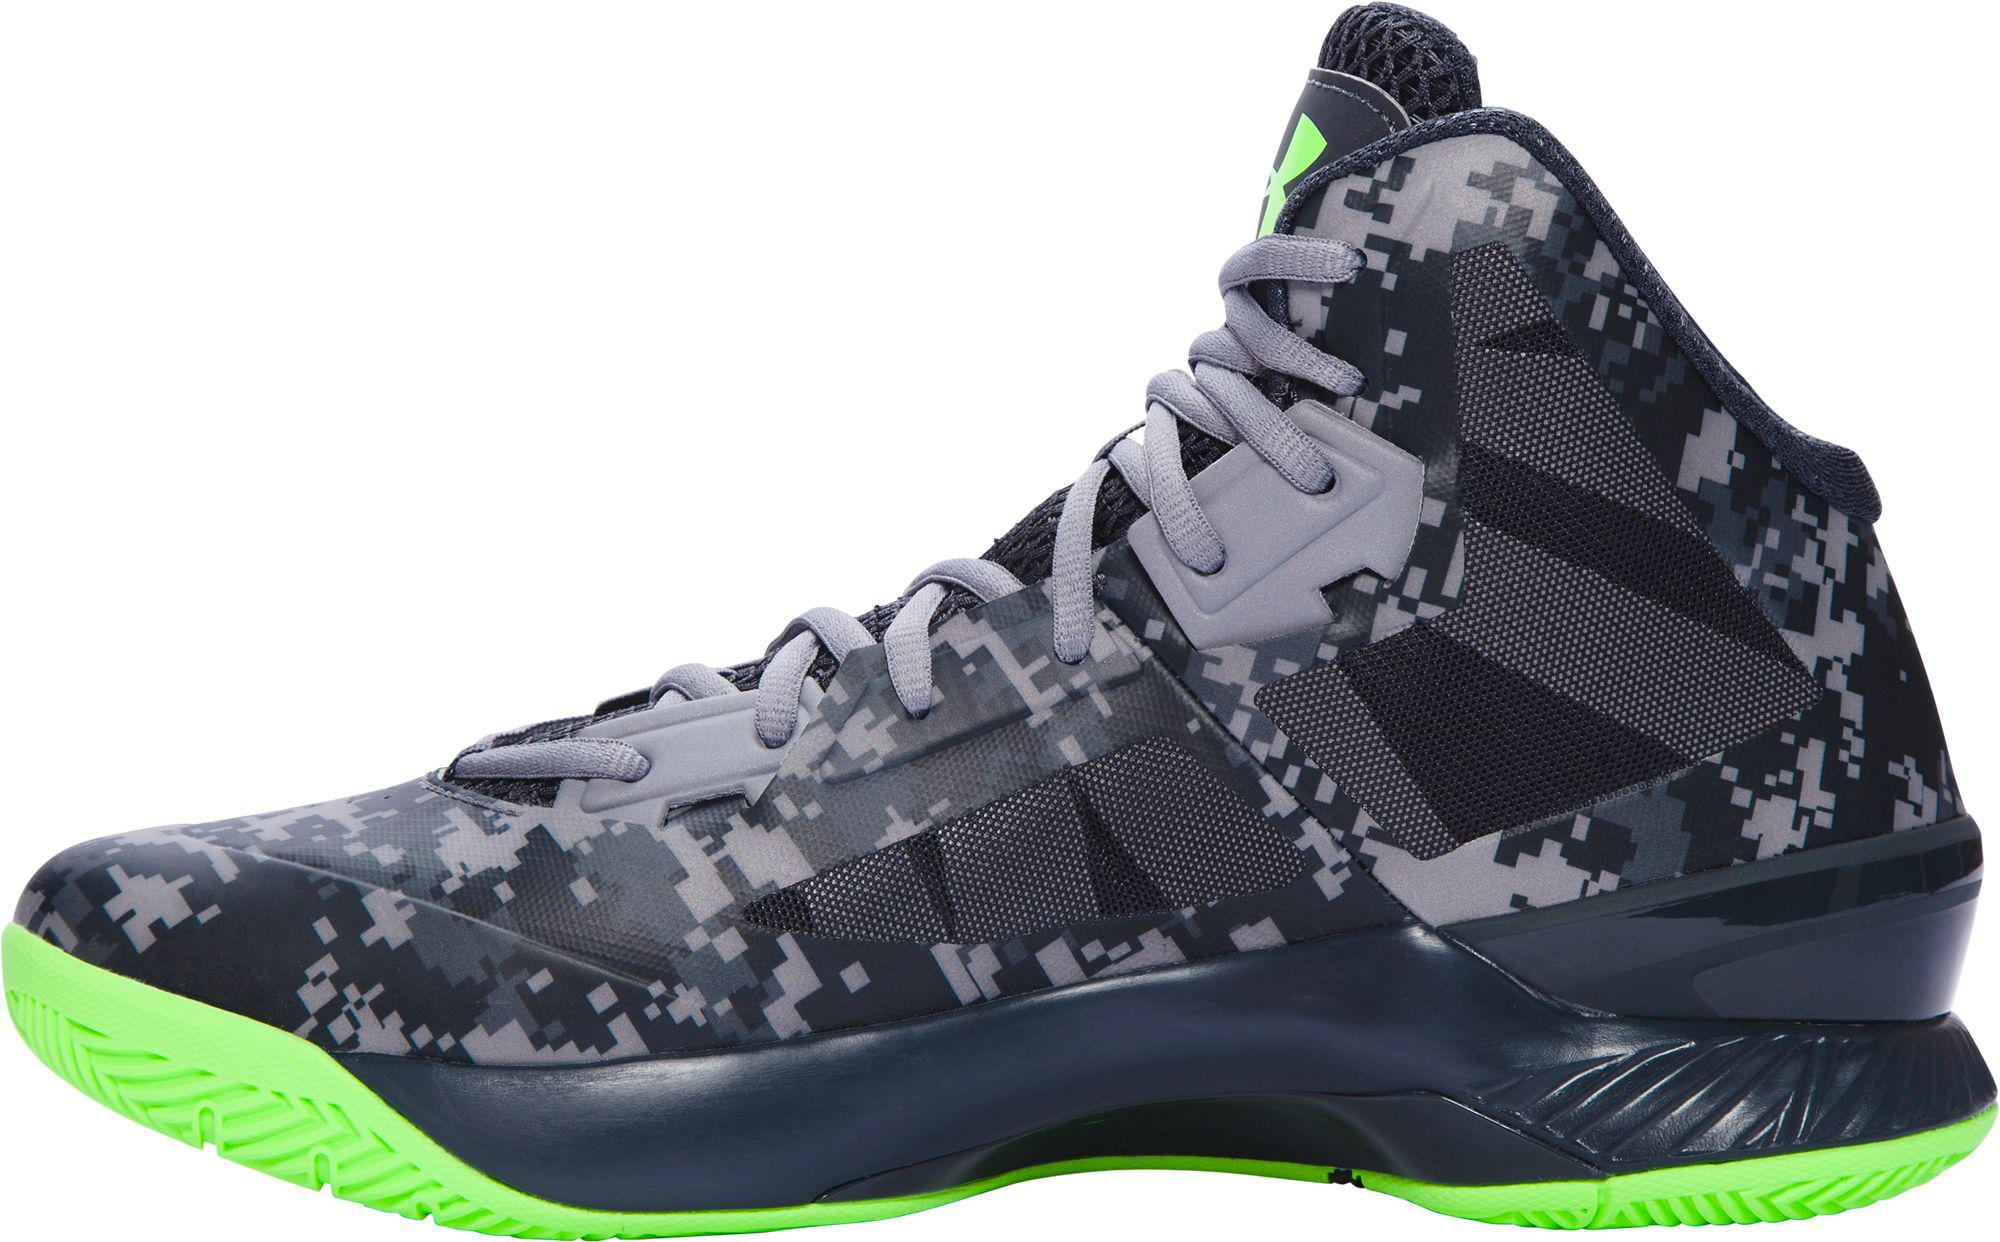 297e12720f08 Under Armour - Multicolor Clutchfit Lightning Basketball Shoes for Men -  Lyst